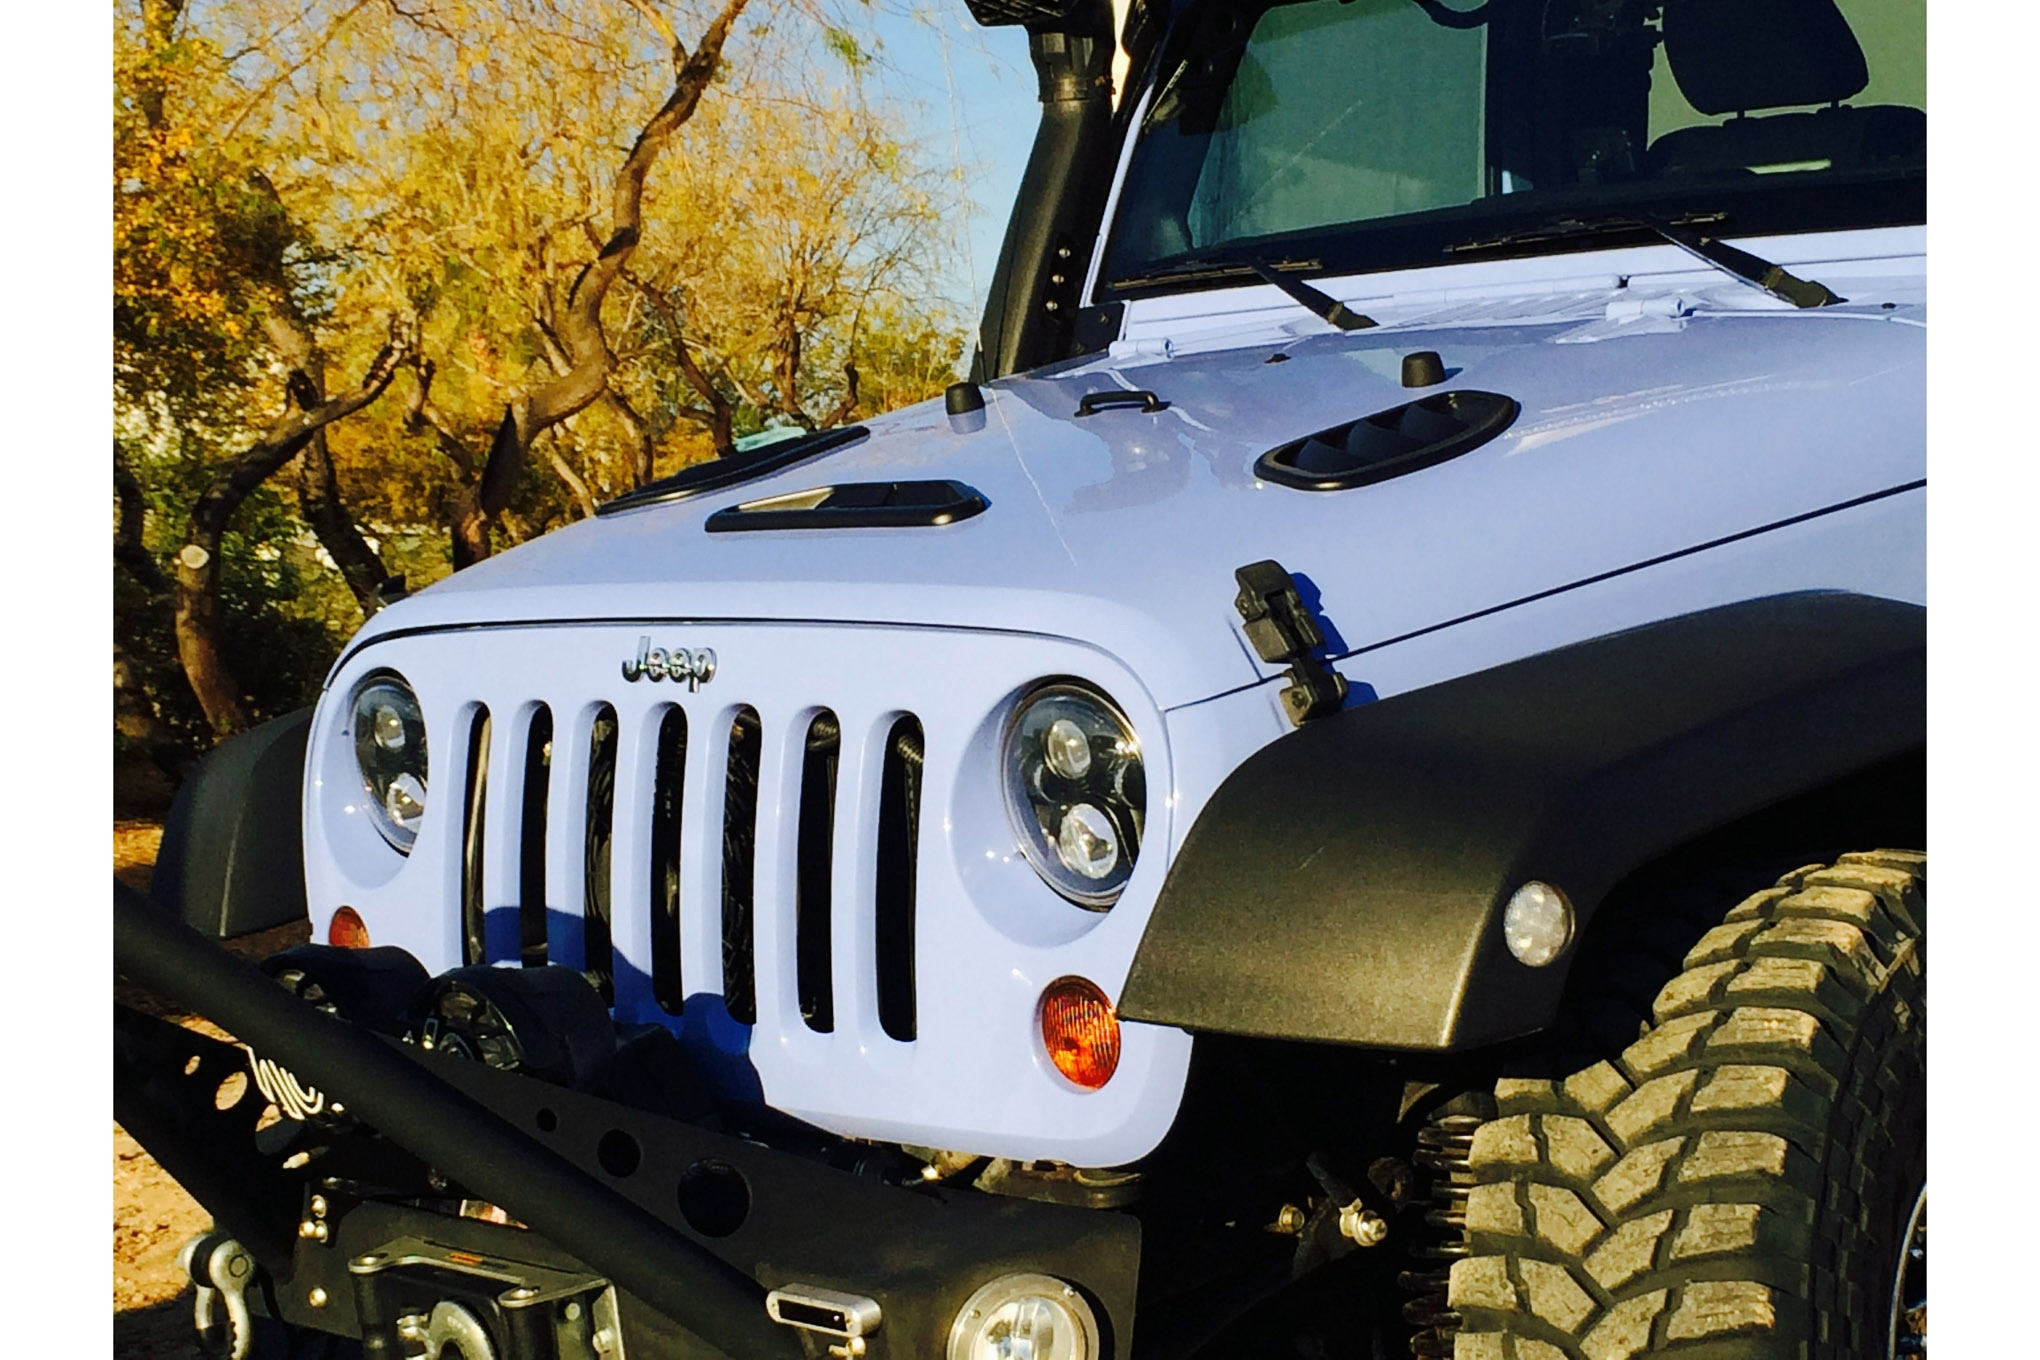 medium resolution of new products daystar jeep wrangler jk hood vents cutouts overheat hot engine